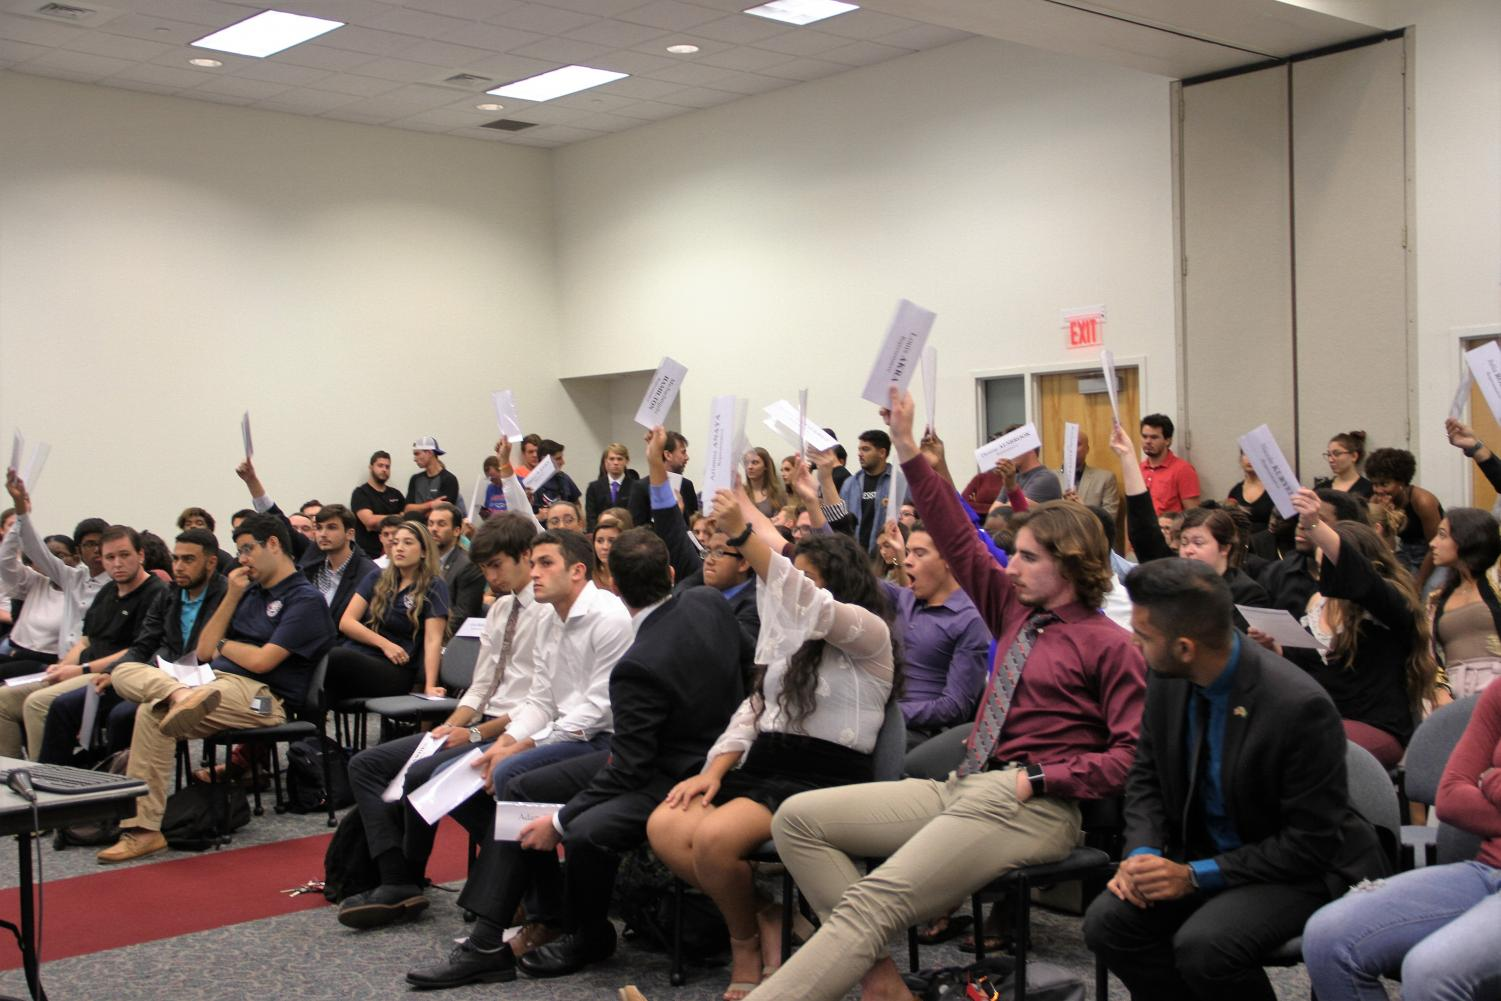 The Boca House of Representatives vote on a proposal during a House meeting, similar to how students will be voting for who will represent them in Student Government later this month. Photo by Hope Dean